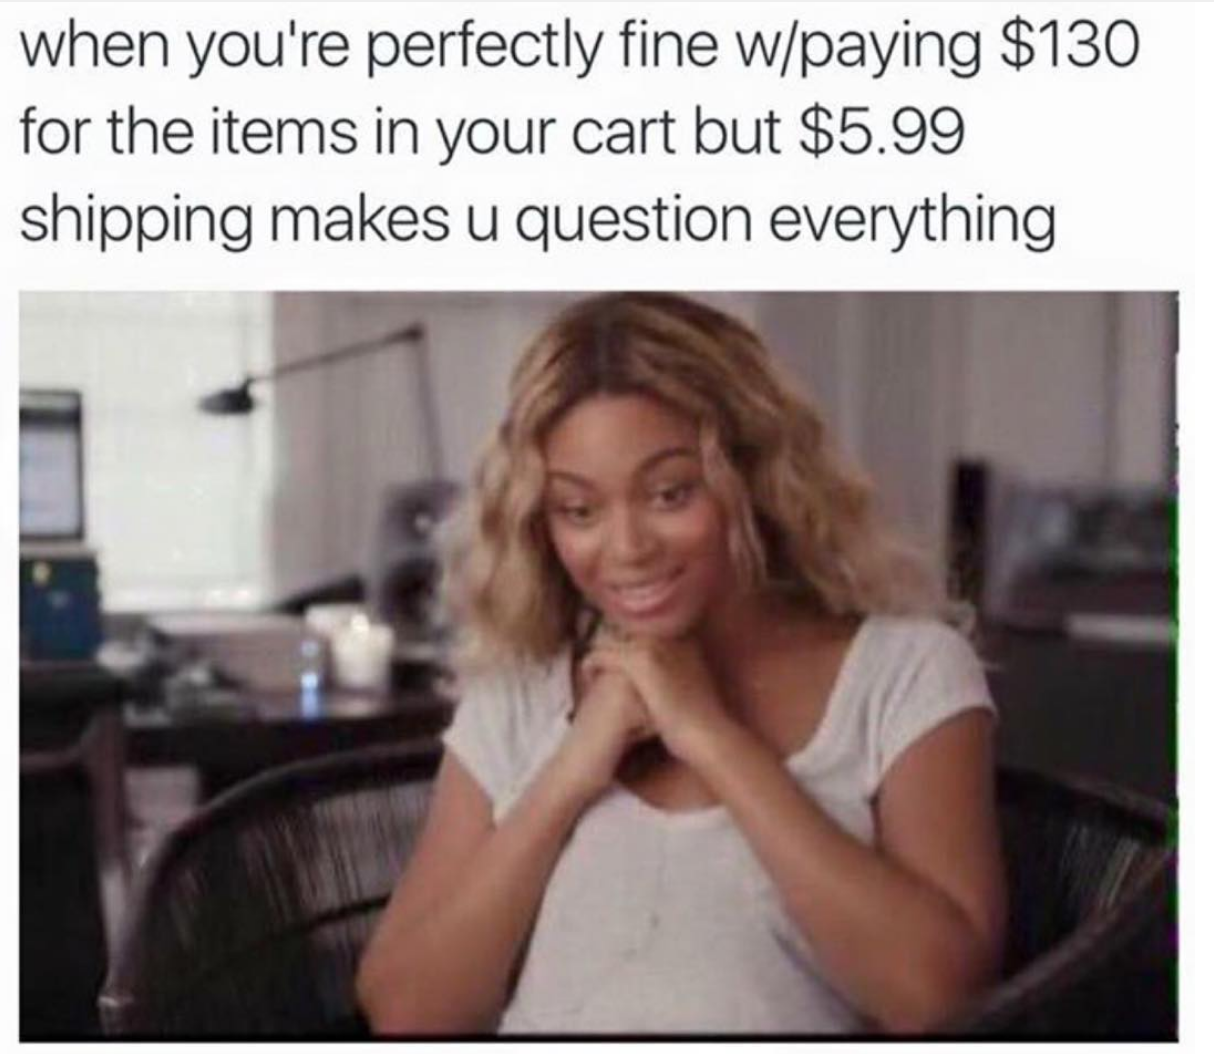 Relatable money mgmt